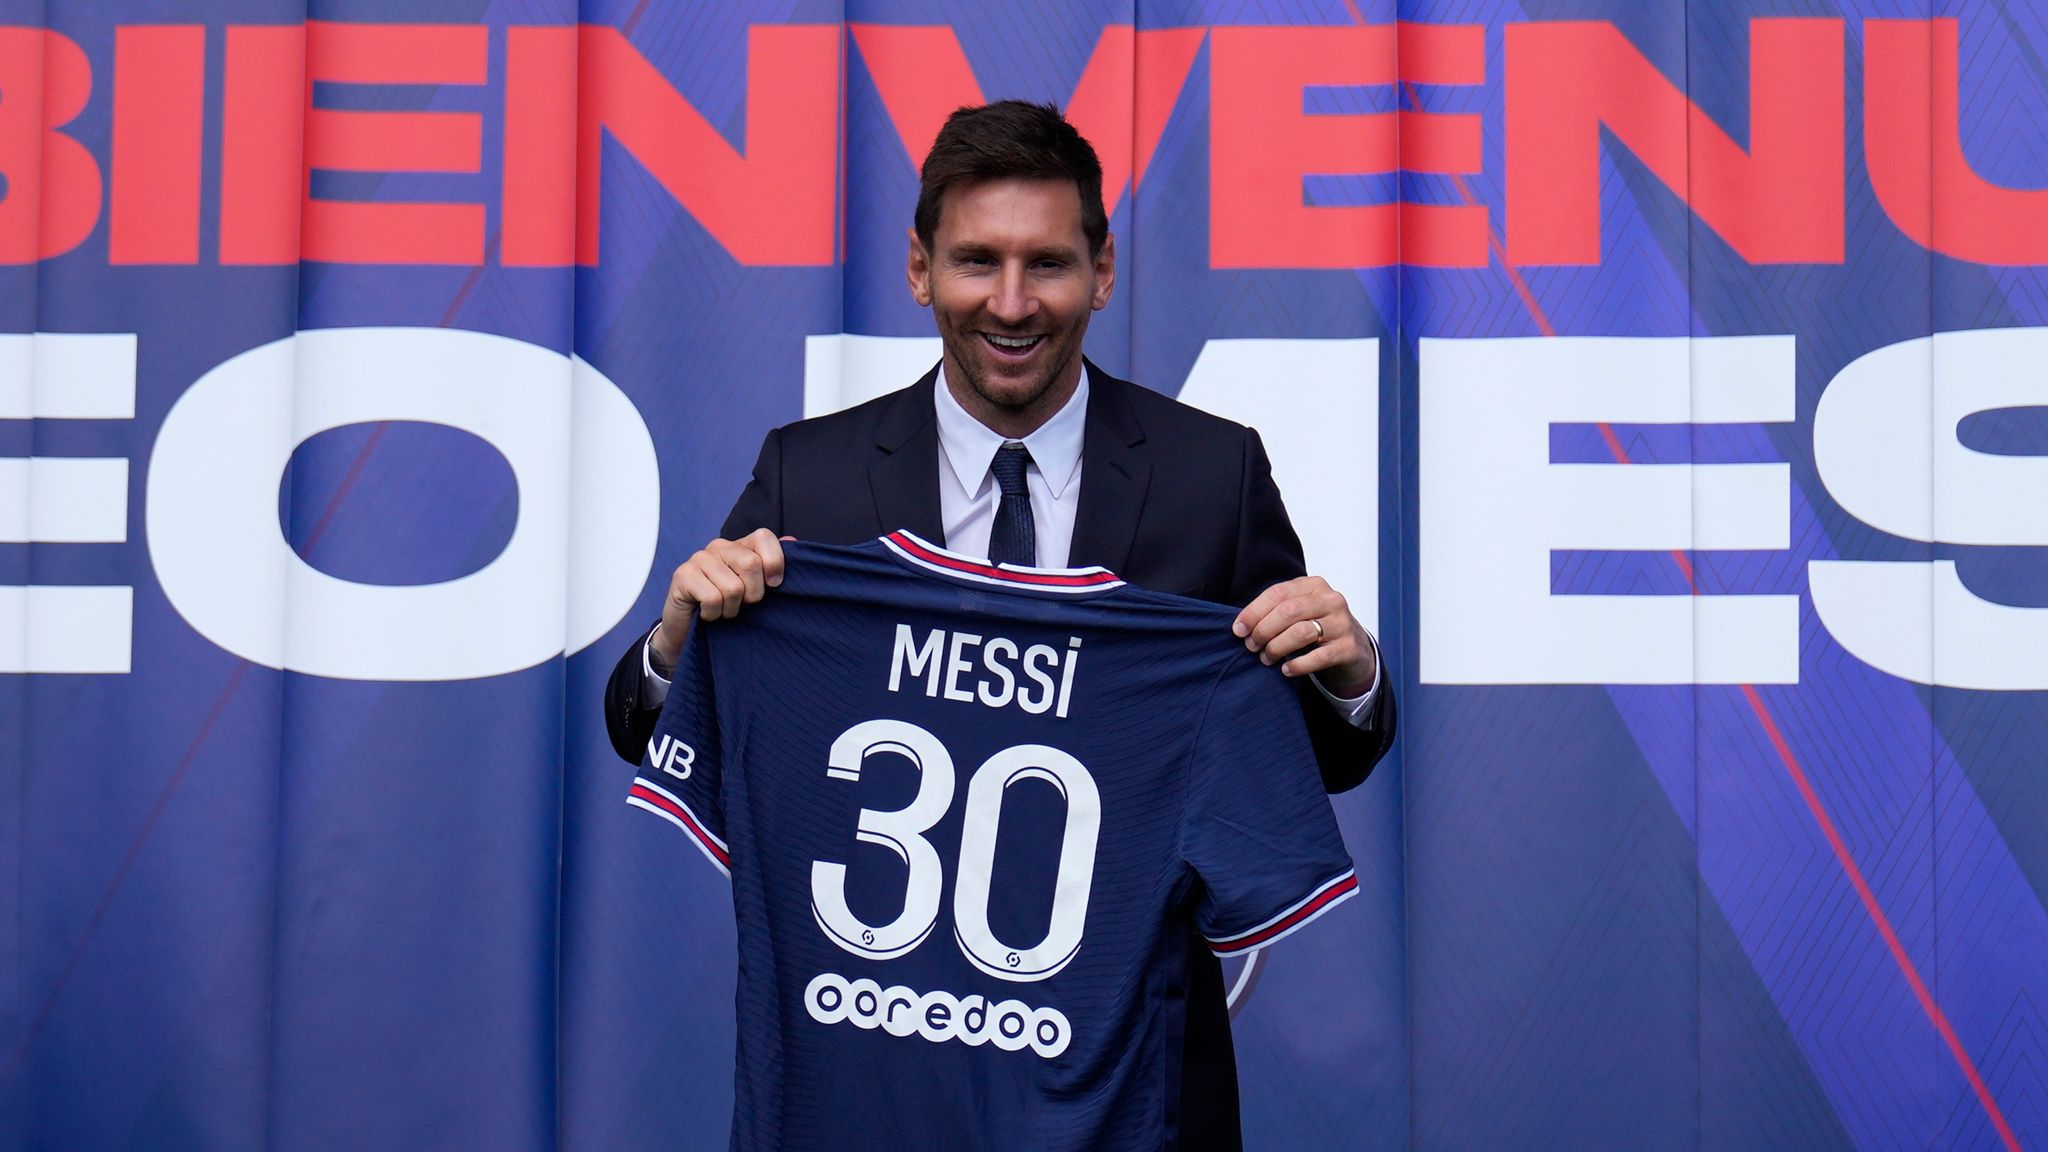 Lionel Messi reveals he chose to join Paris Saint-Germain in order to win  fifth Champions League | Football News | Sky Sports